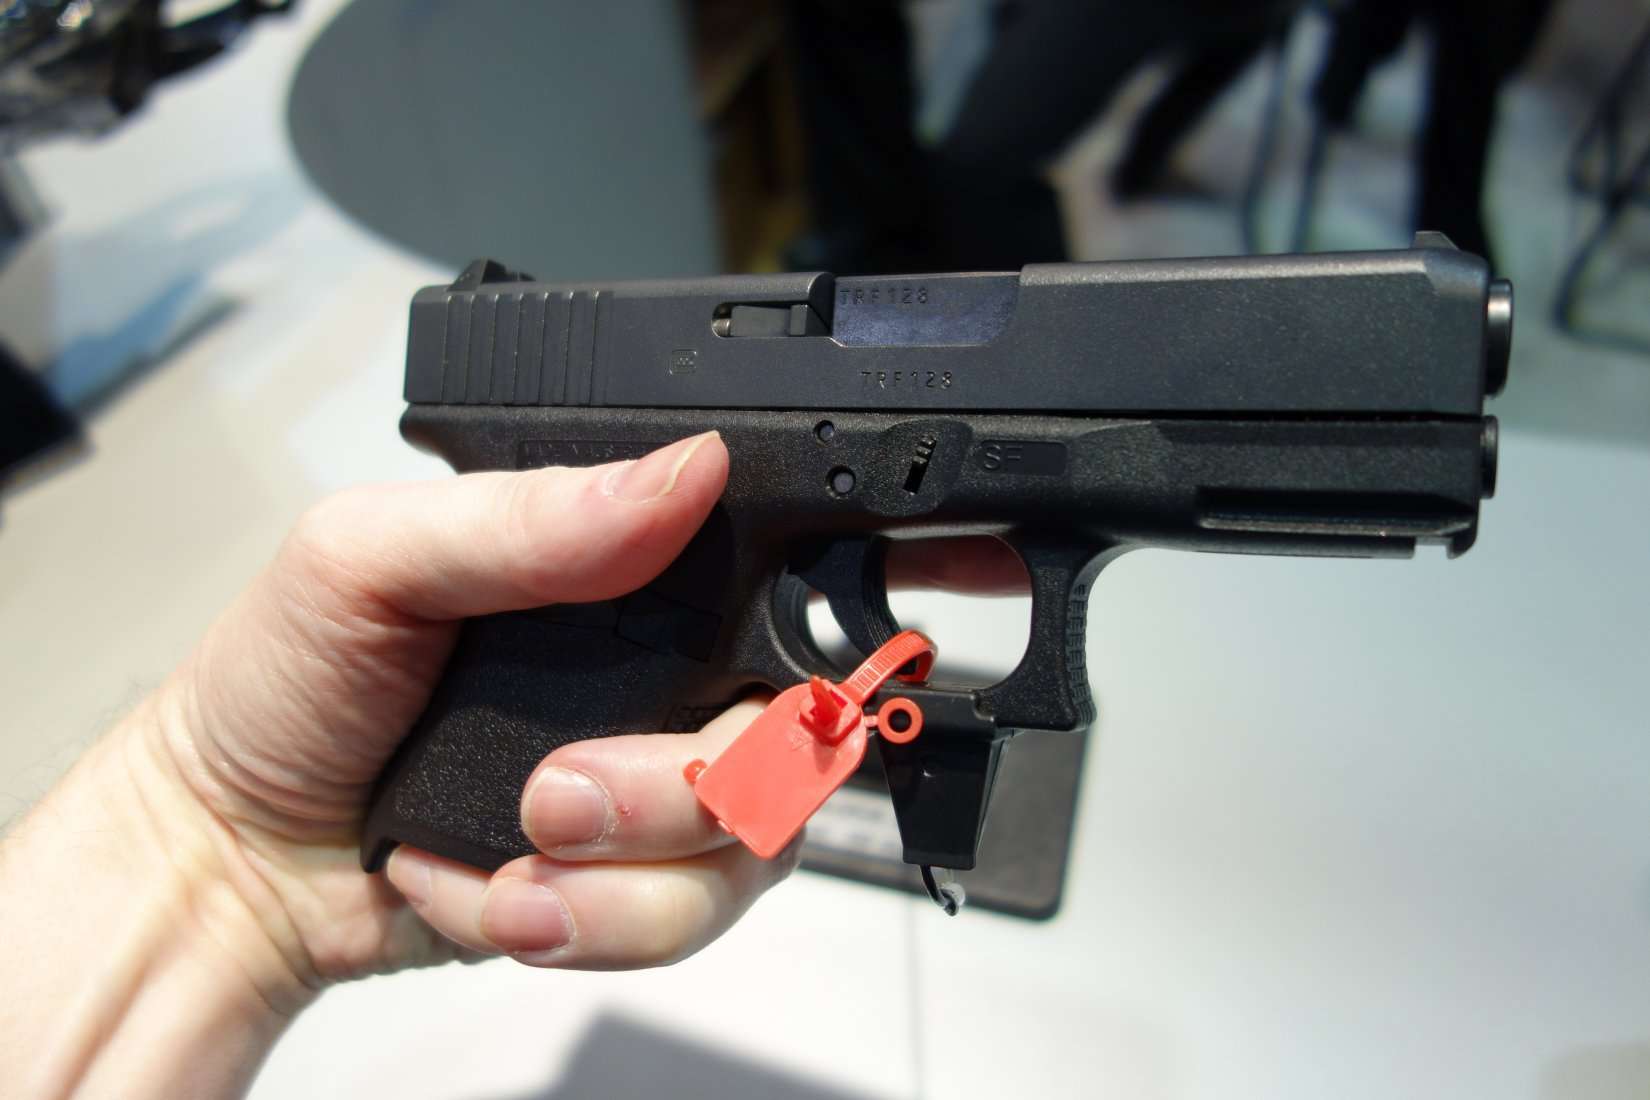 Glock 30S (G30S) Compact .45 ACP Semi-Auto High-Capacity Combat/Tactical Pistol for Concealed Carry (CCW) Applications and Undercover Operations: Glock 36 Slide Meets Glock 30SF Frame! (Video!)